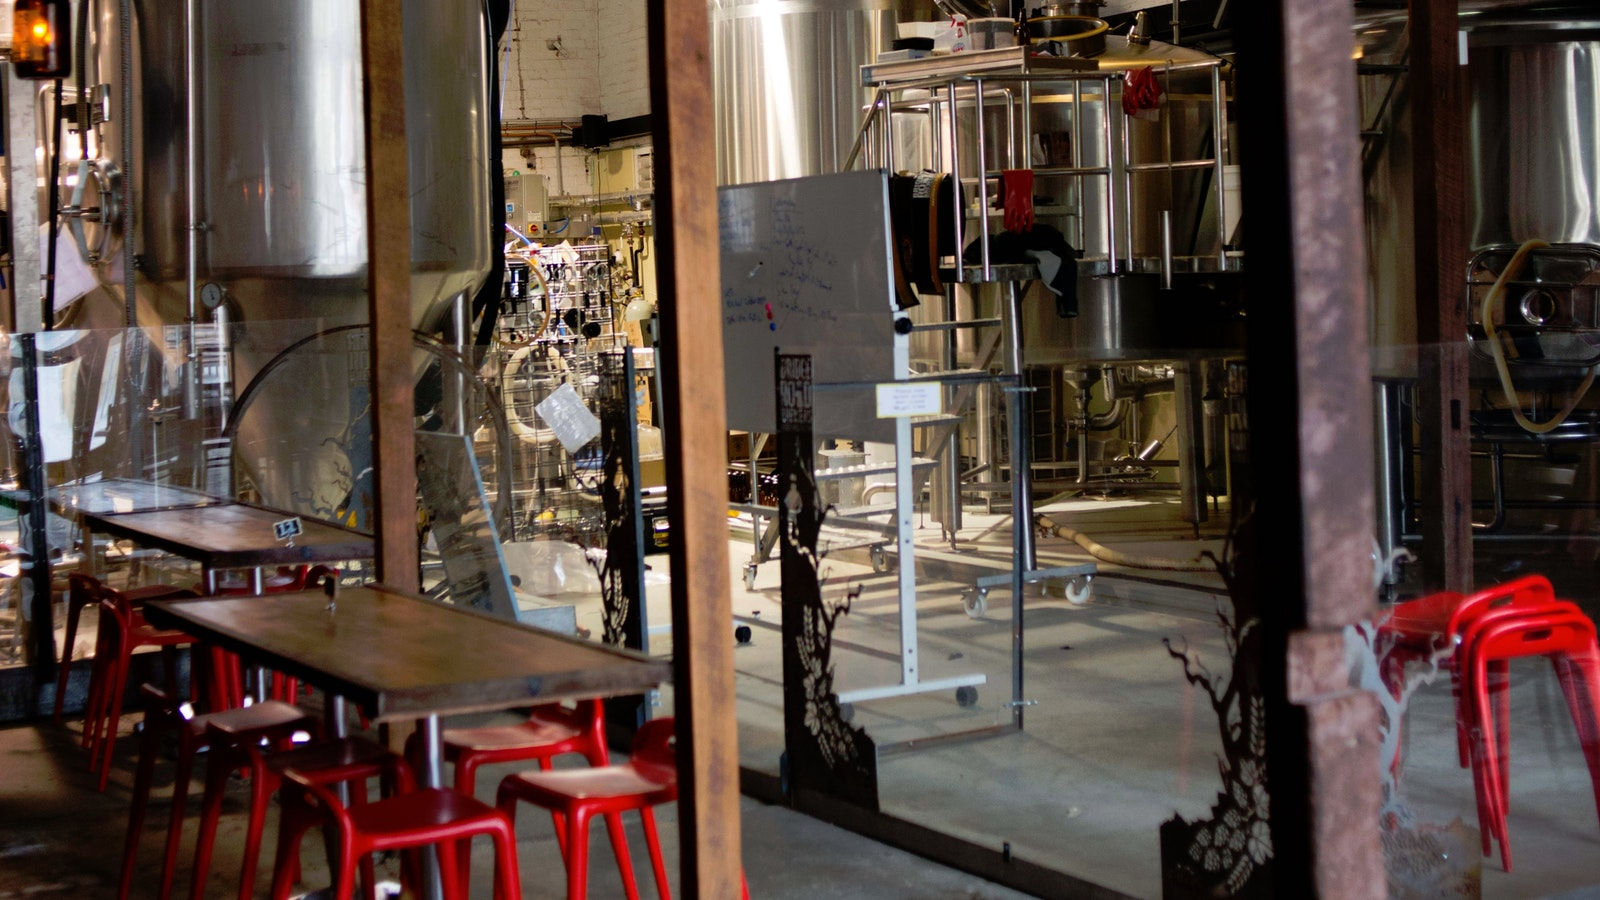 Drink and dine in the heart of the brewery